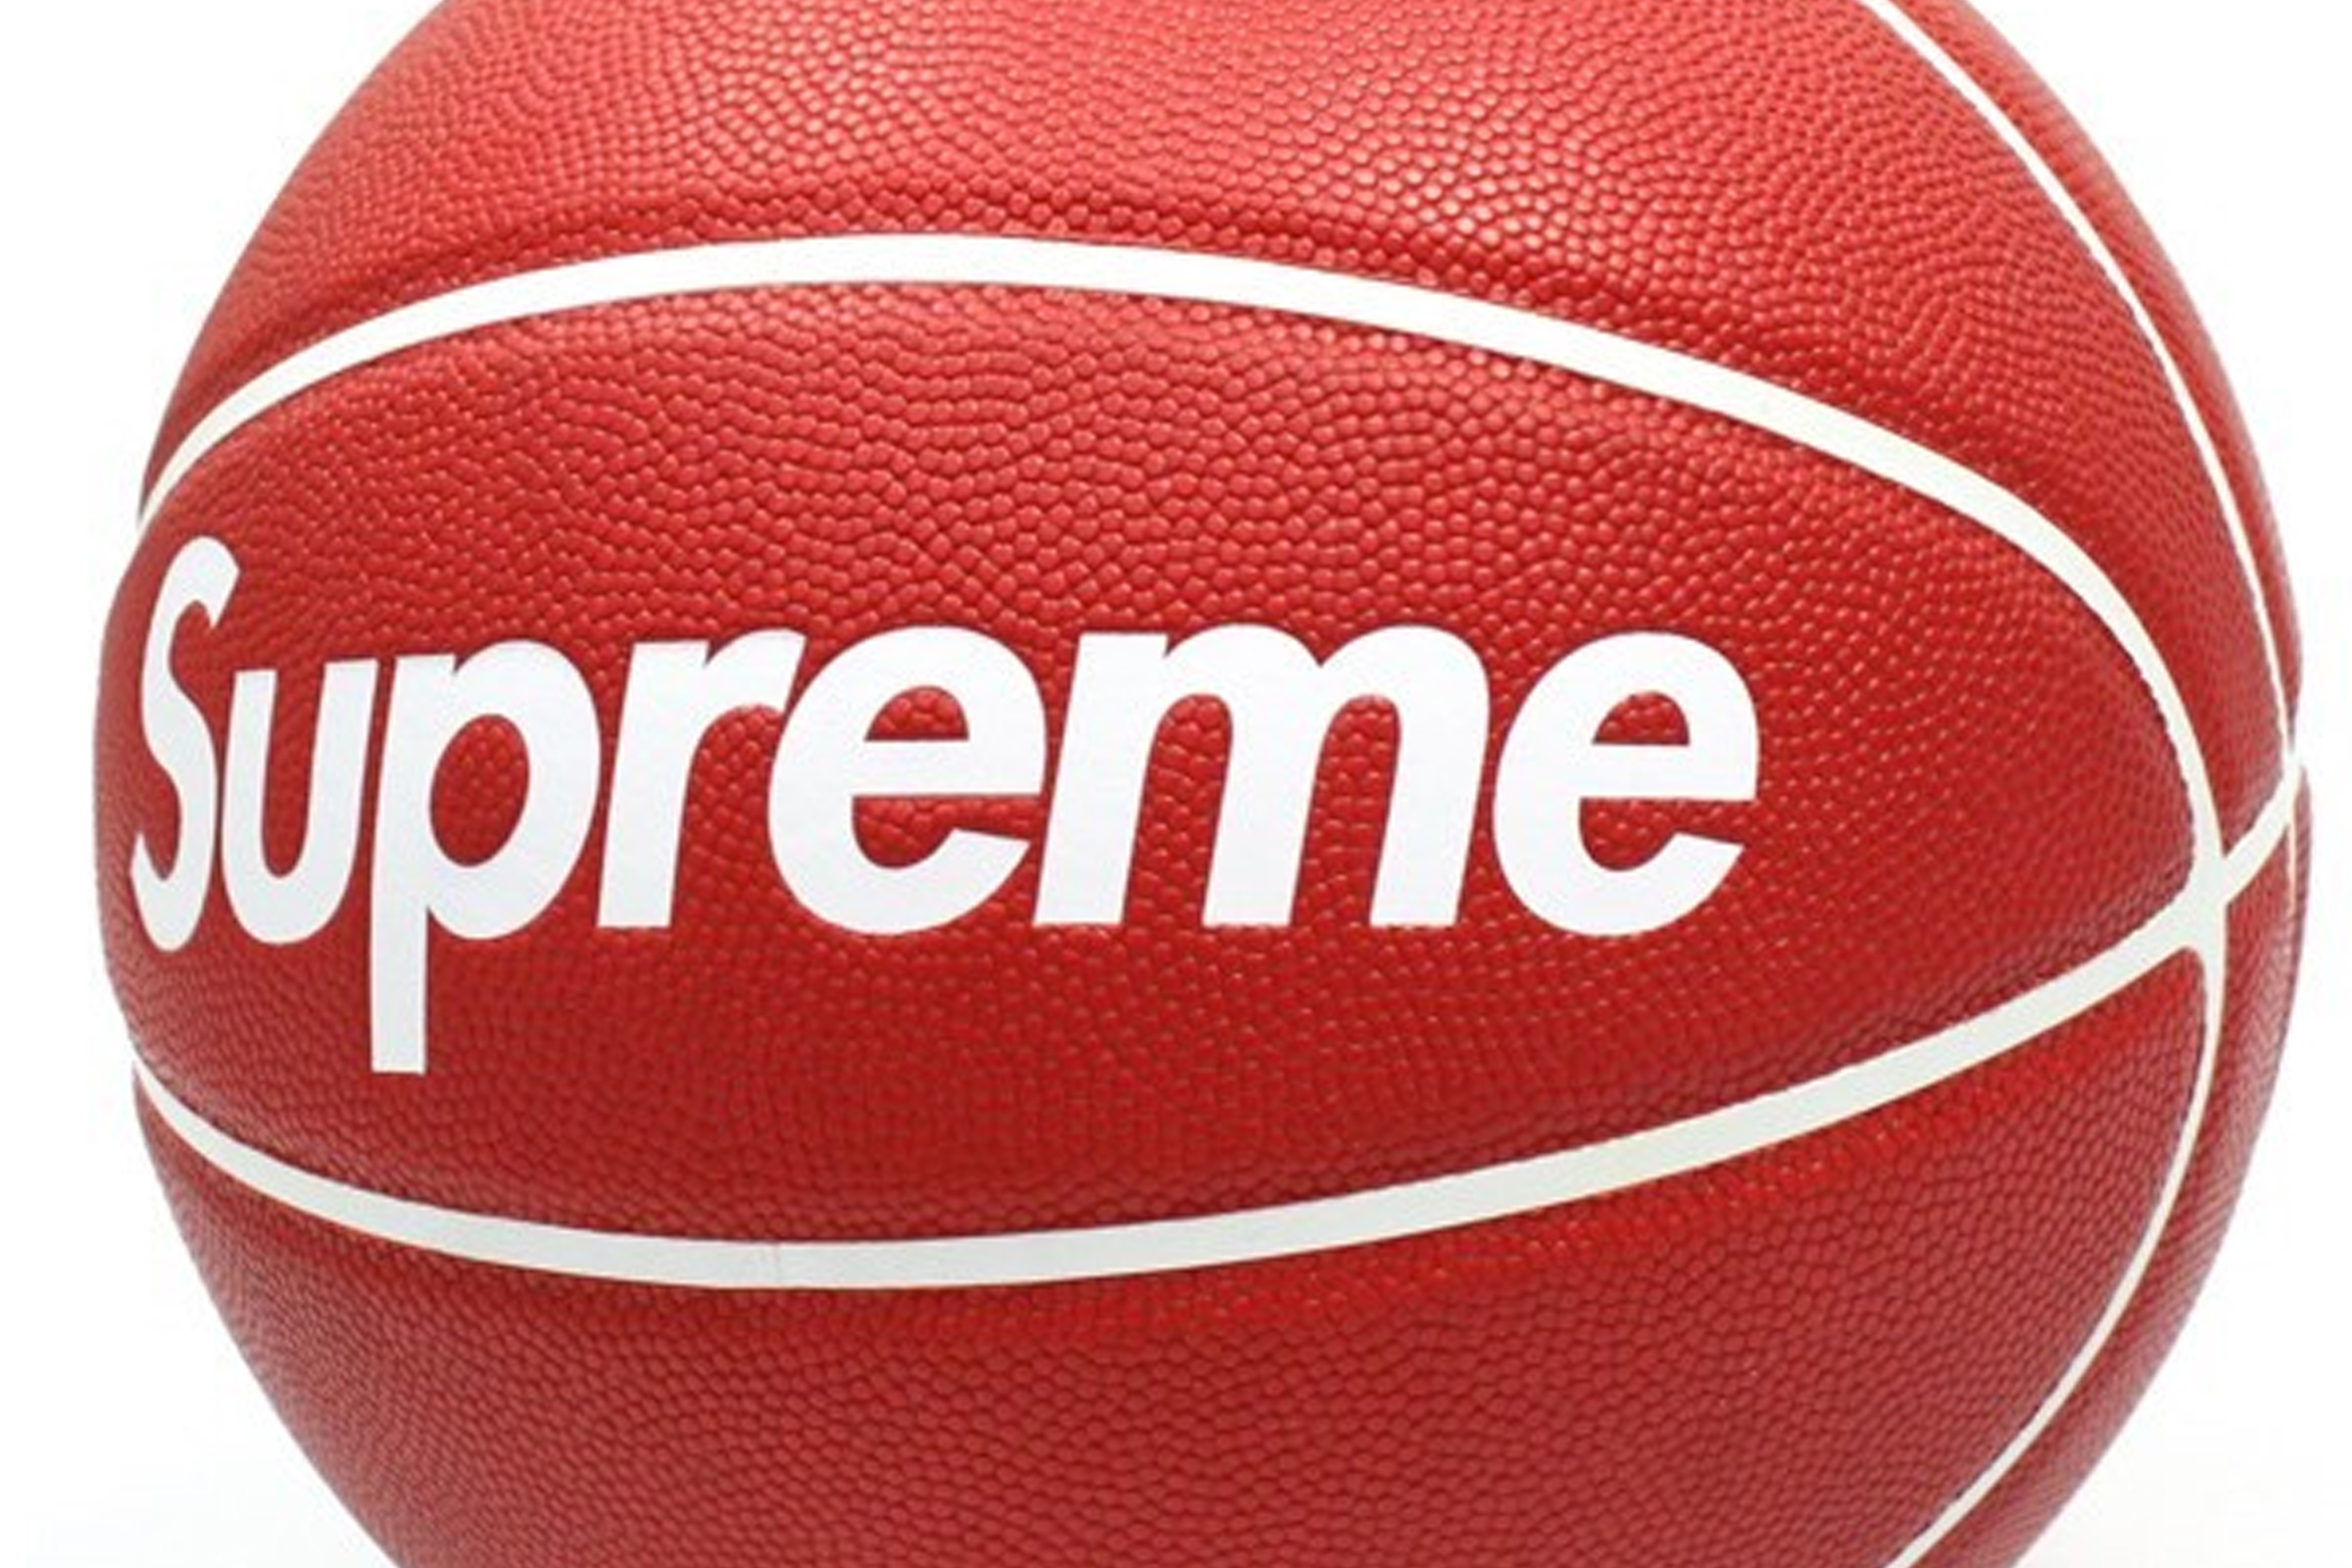 9b75811b20a Our 50 Favorite Supreme Accessories - Supreme Accessories History ...